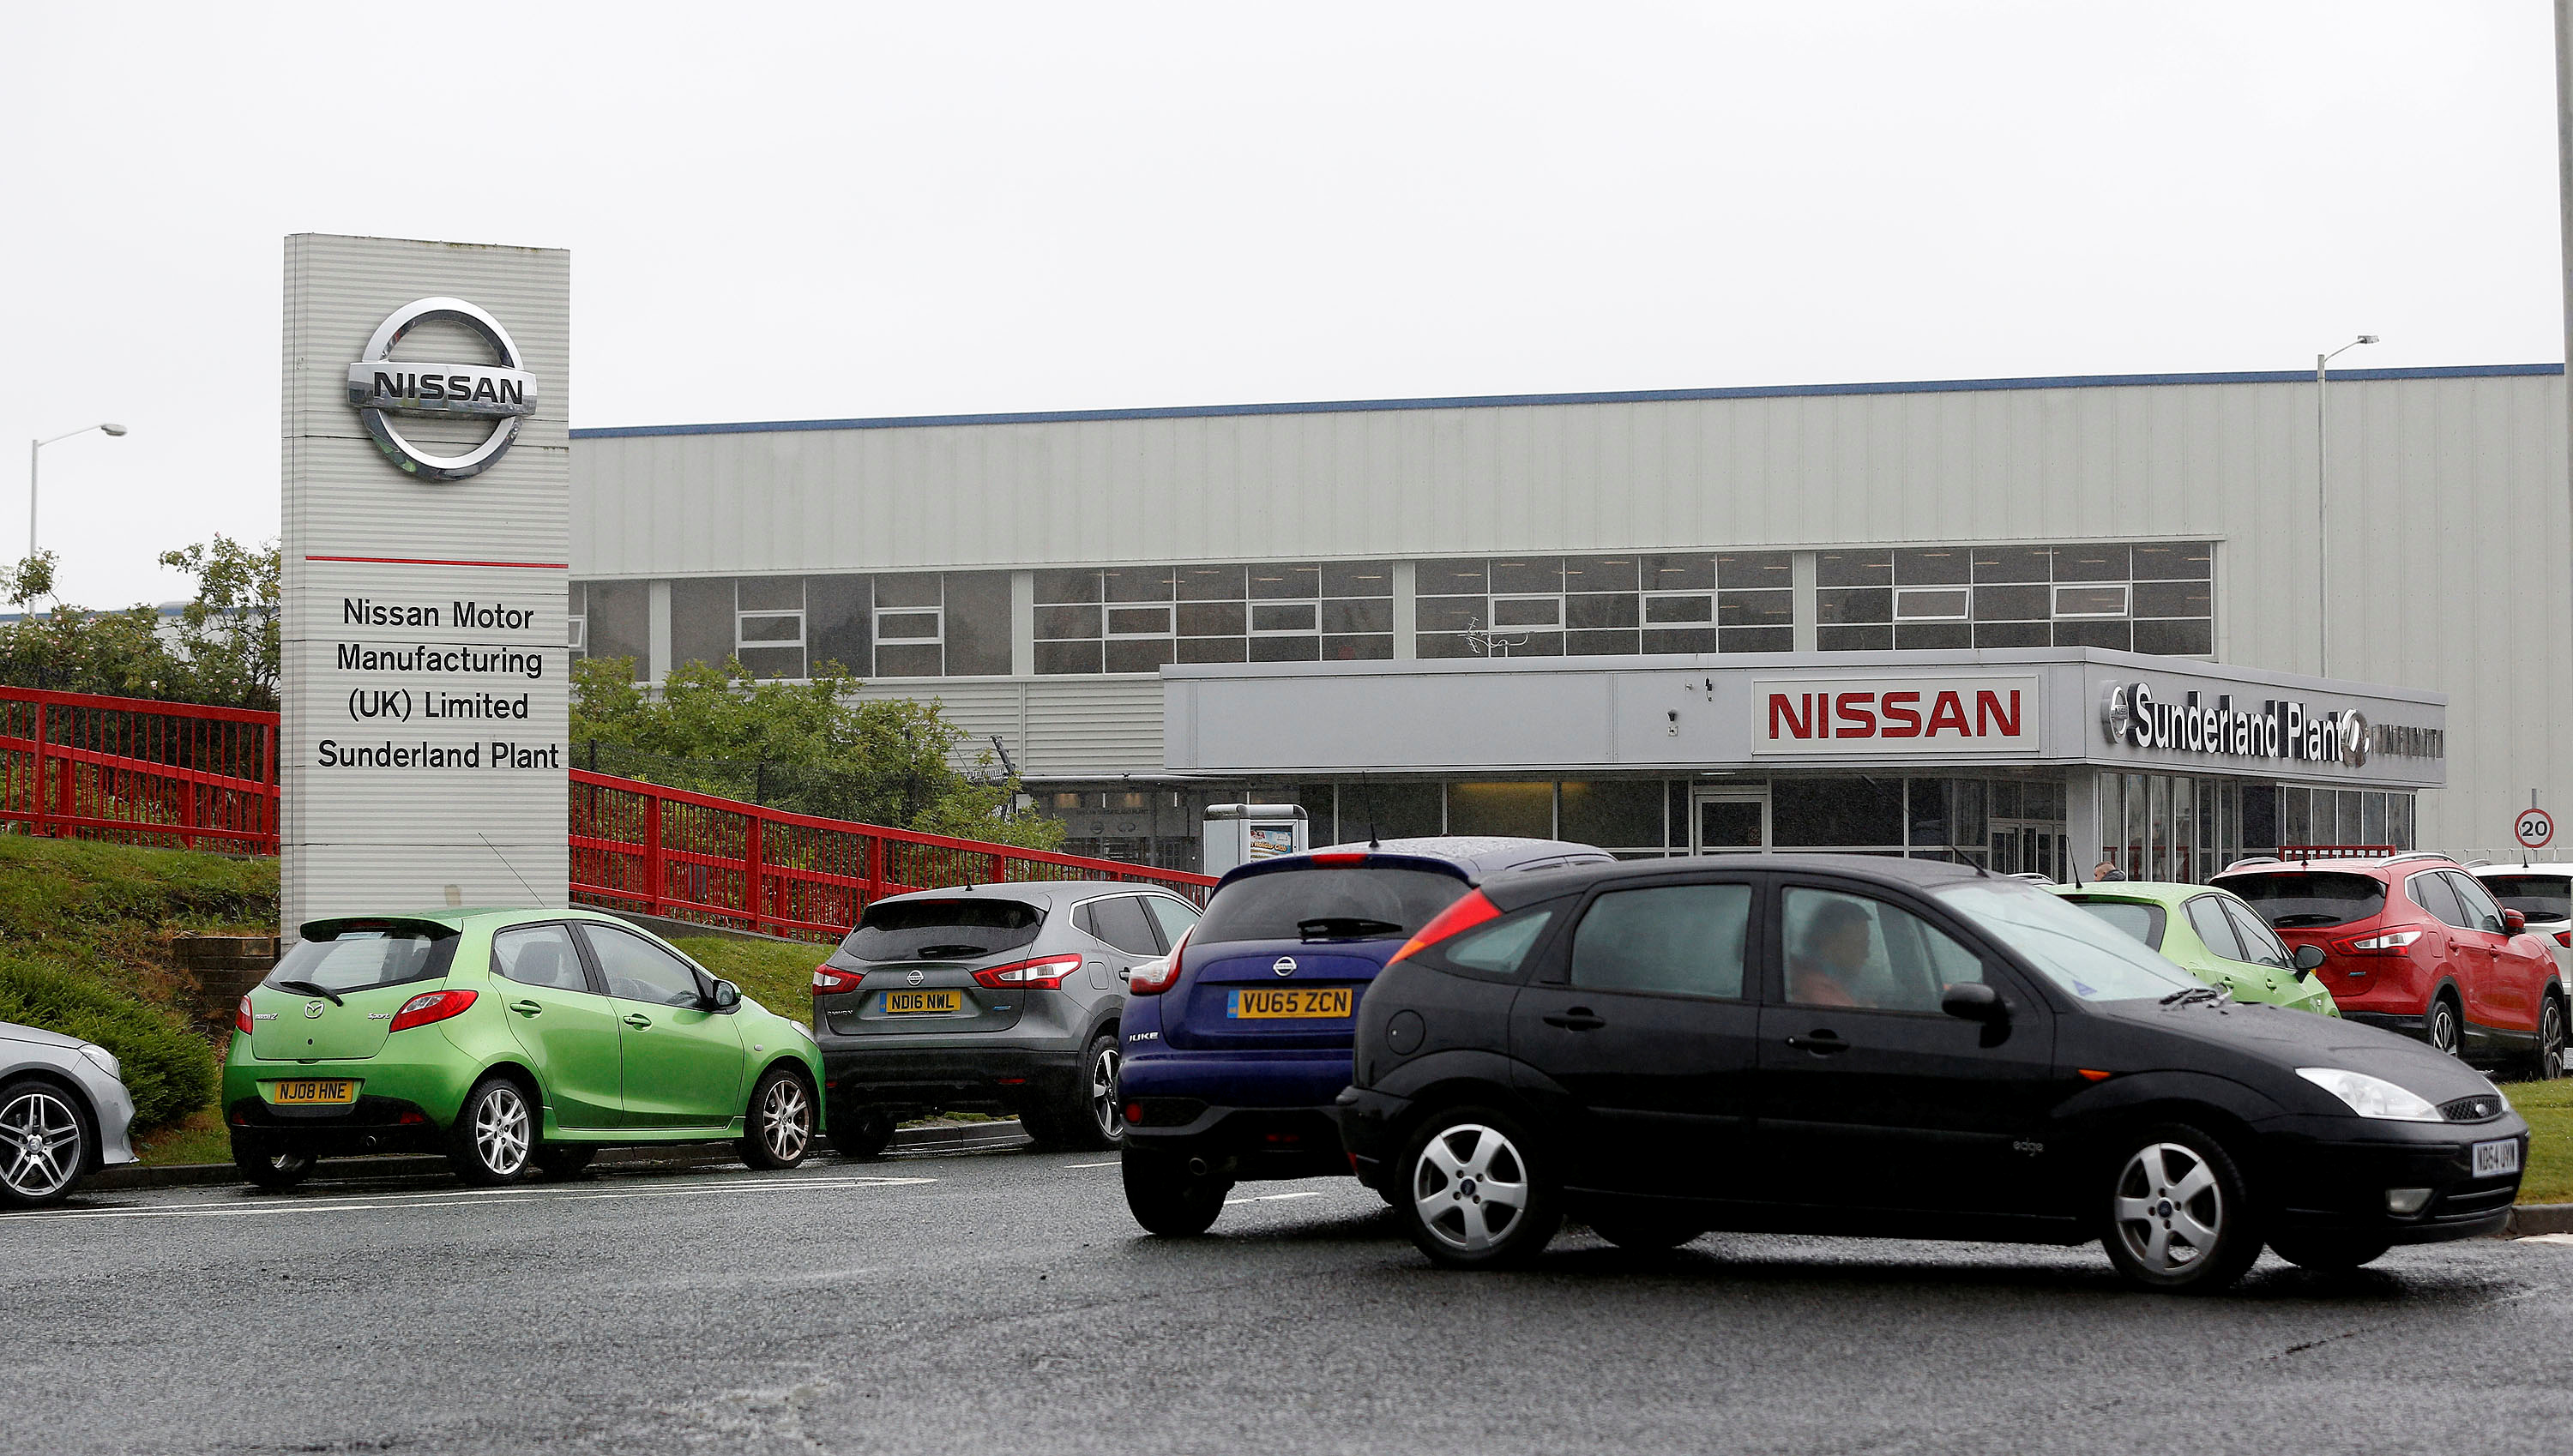 A general view of the Nissan factory in Sunderland, Britain June 29, 2016. Picture taken June 29, 2016. REUTERS/Andrew Yates